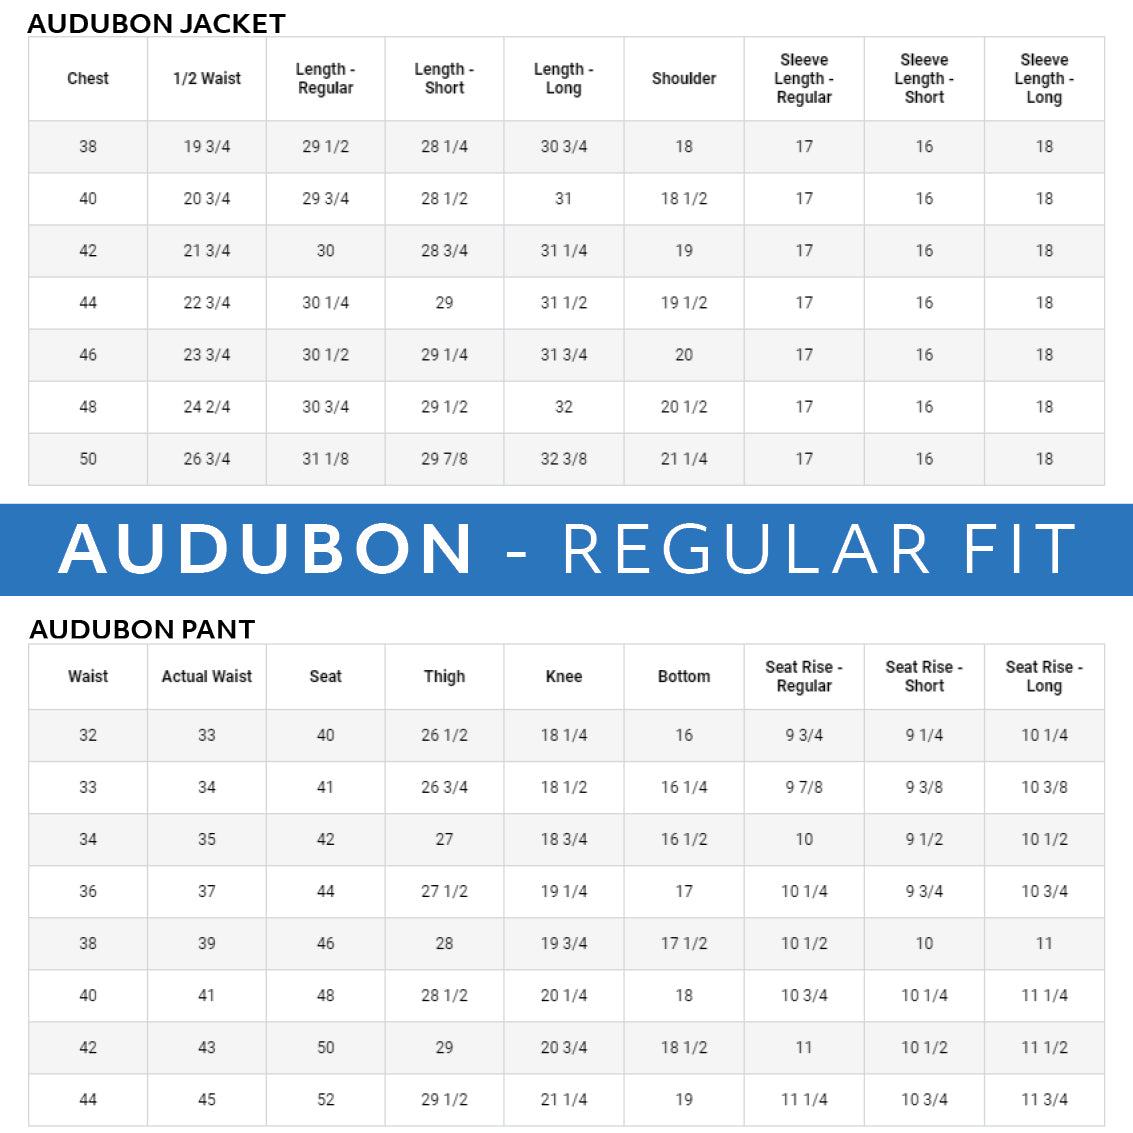 Haspel seersucker suit separates size charts. Audubon regular fit.